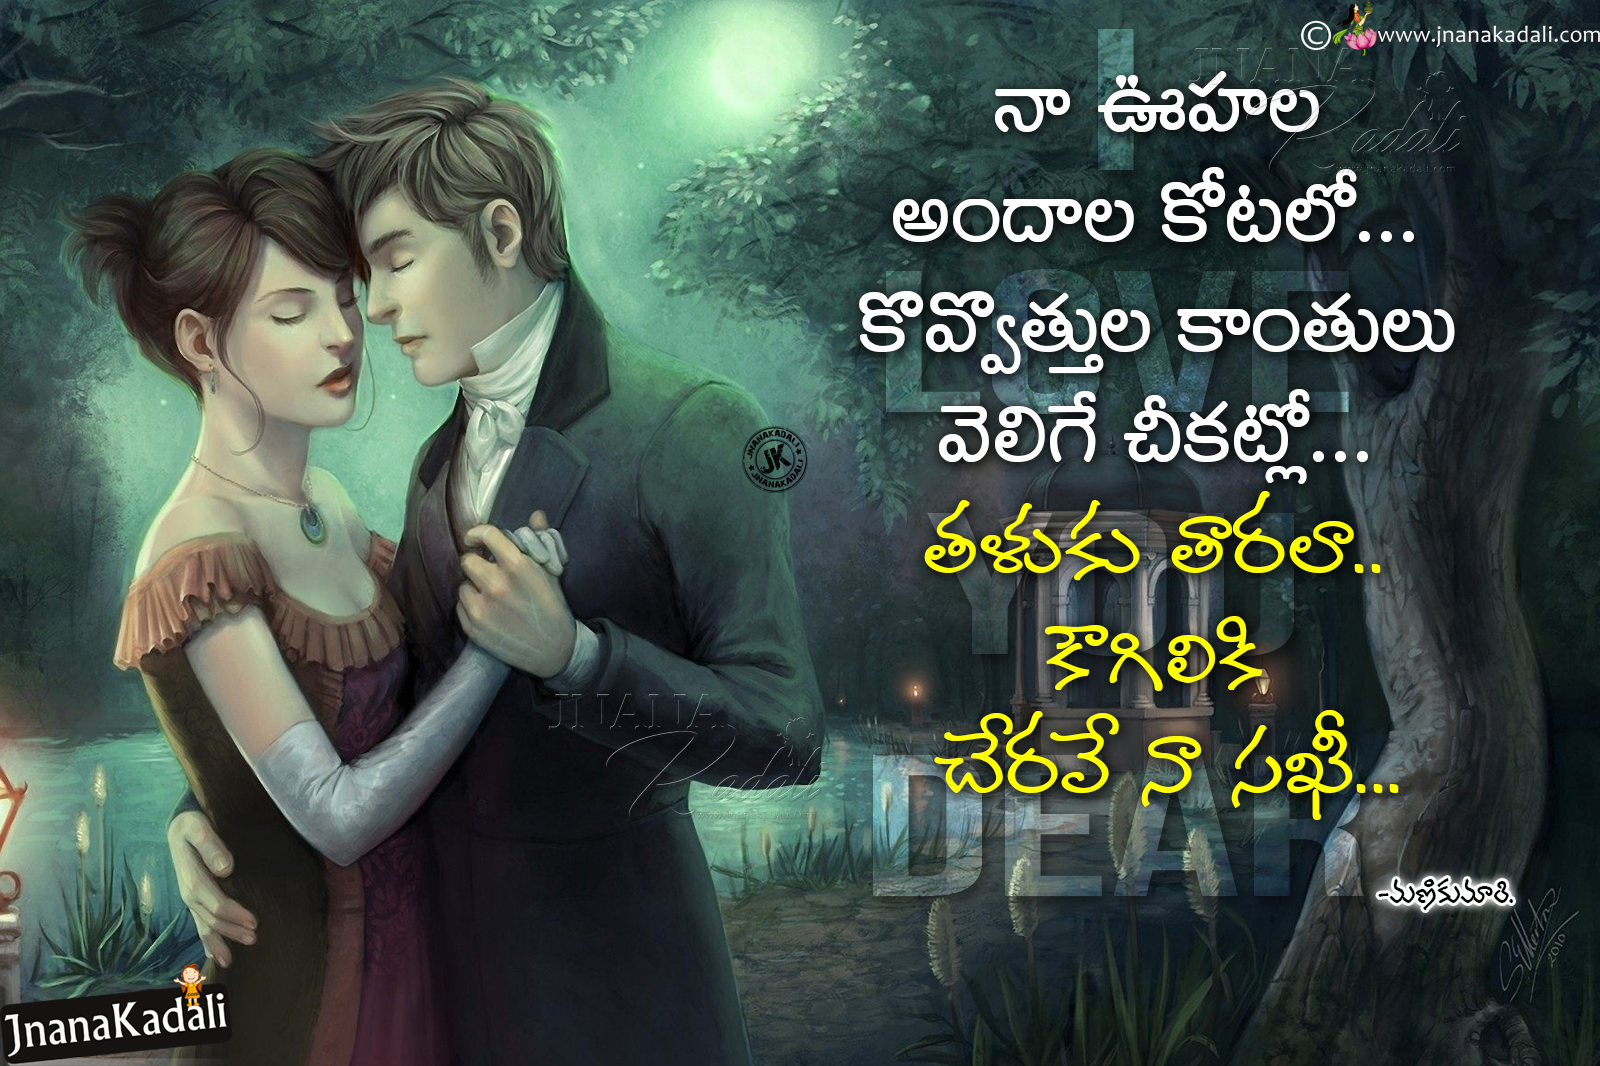 Romantic Telugu Love Quotes With Hd Wallpapers Love Kavithalu By